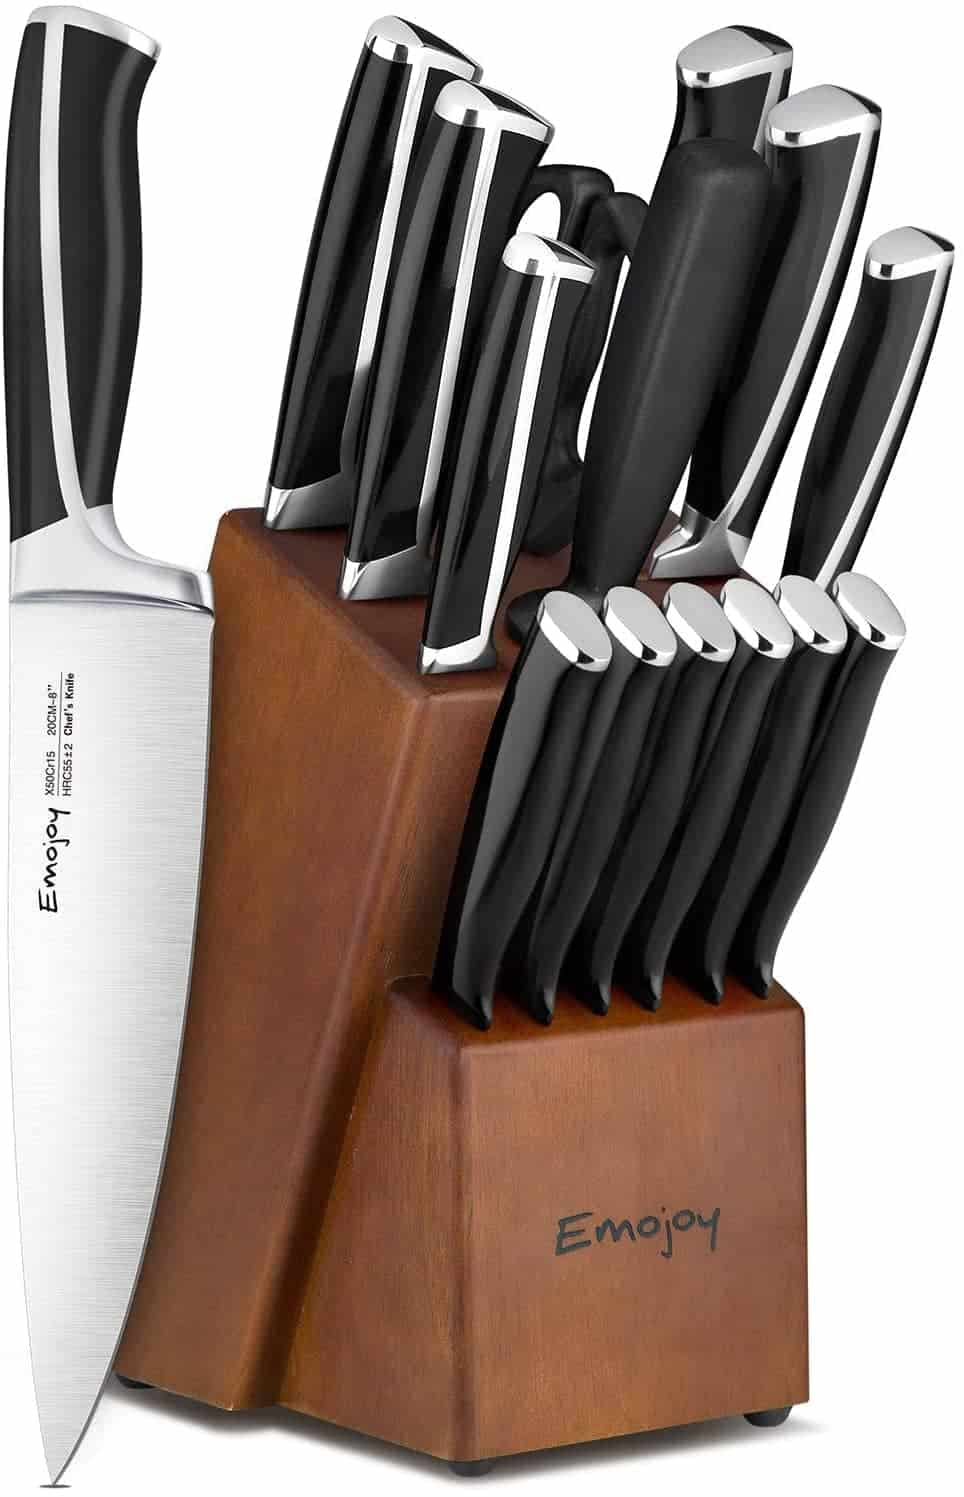 Emojoy 15-Piece Kitchen Knives